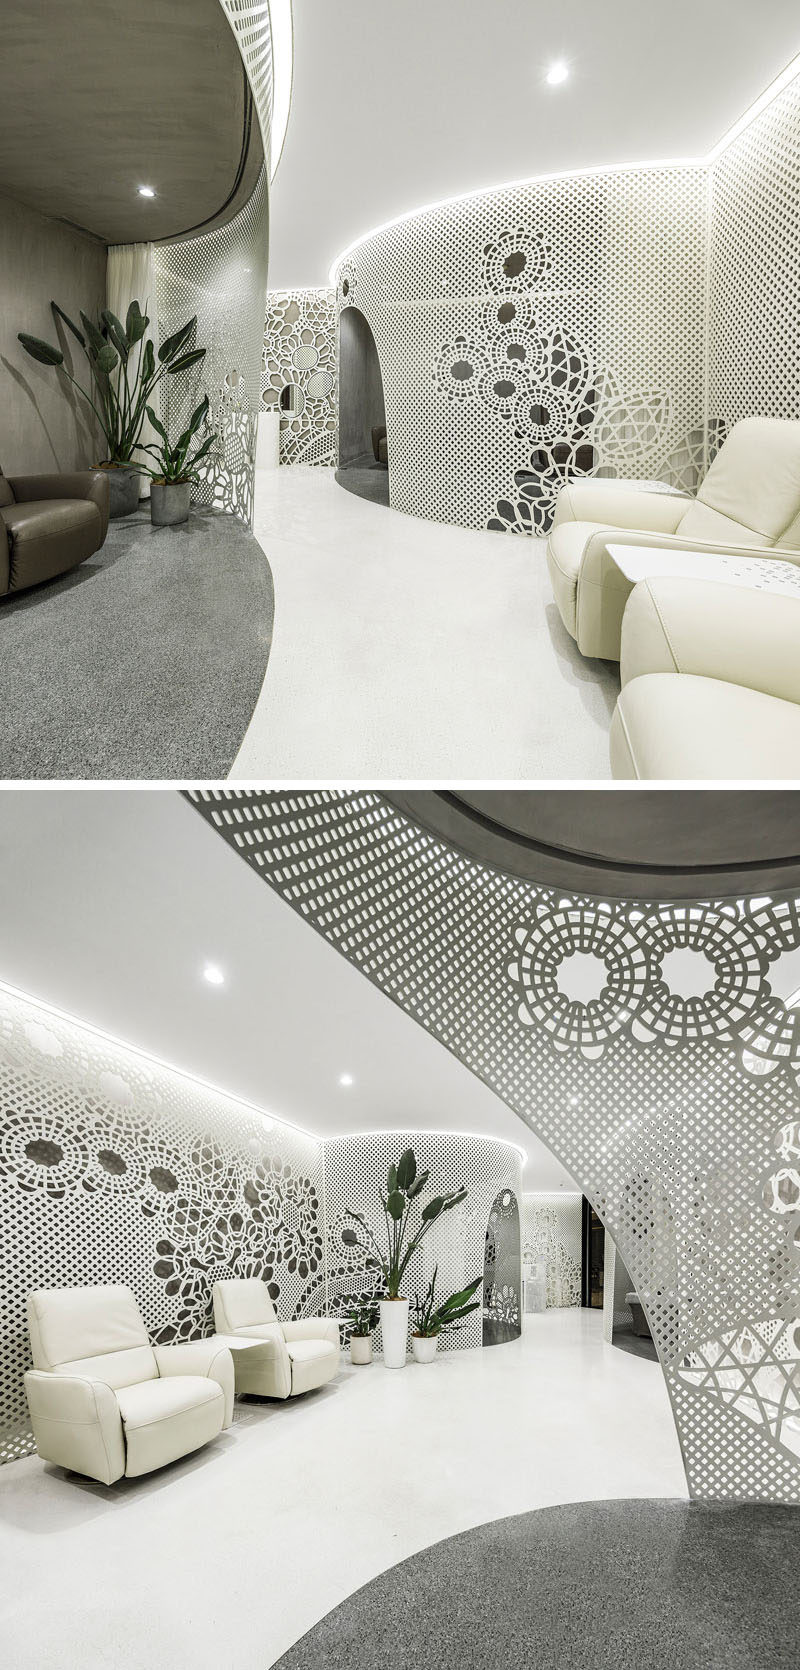 Lace-like patterns on the walls create artistic installations throughout this modern nail salon, while the curved sections of the salon define different areas like manicure, beauty , reception and storage.